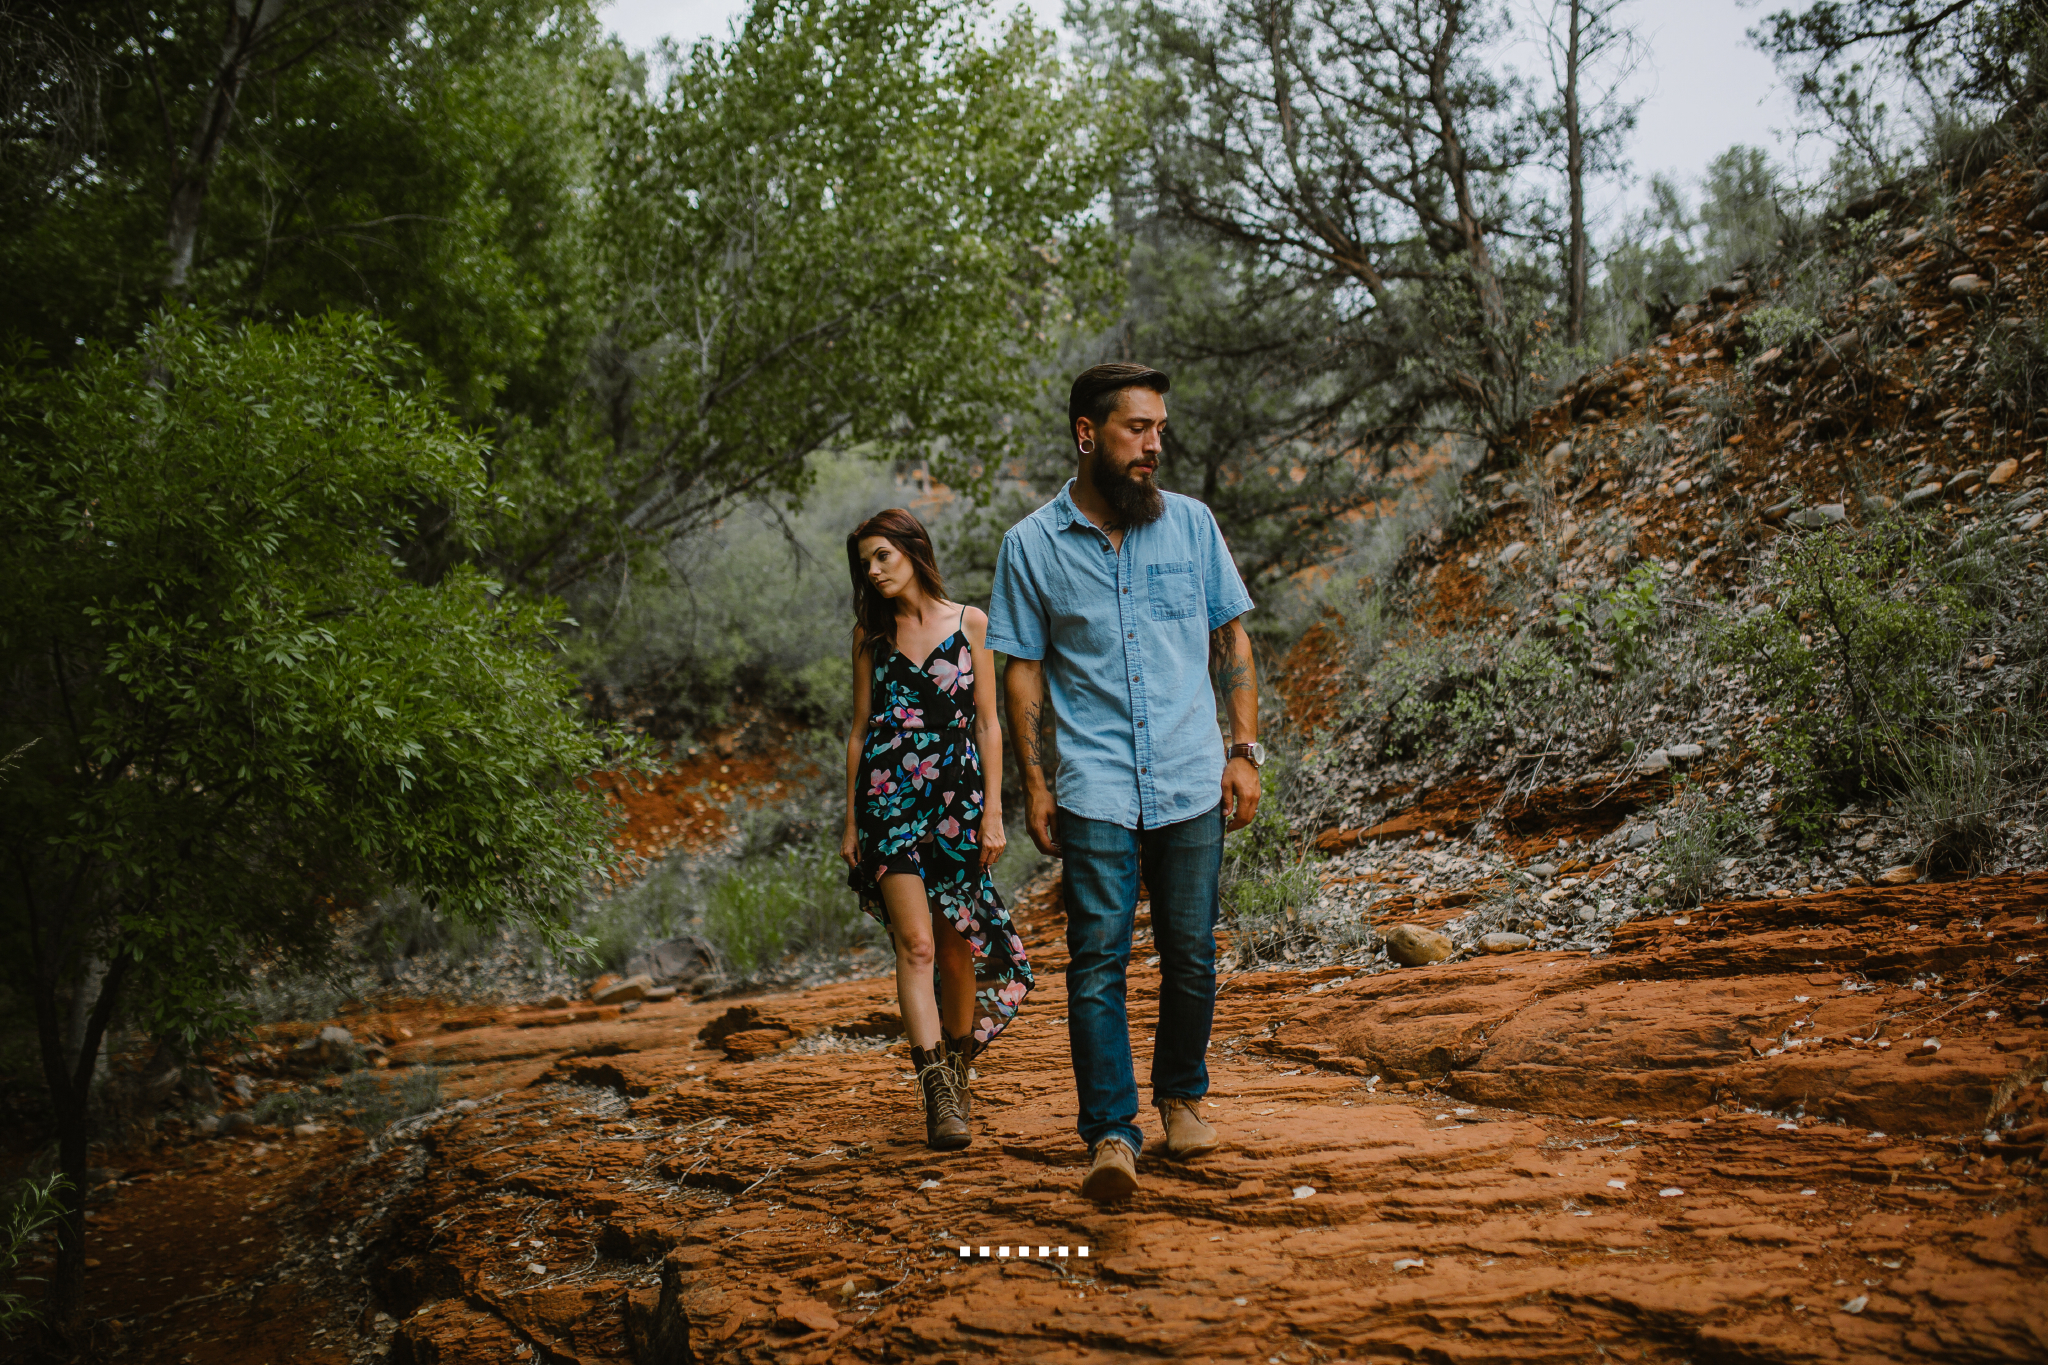 san diego wedding   photographer | bearded man walking with woman in floral black dress behind